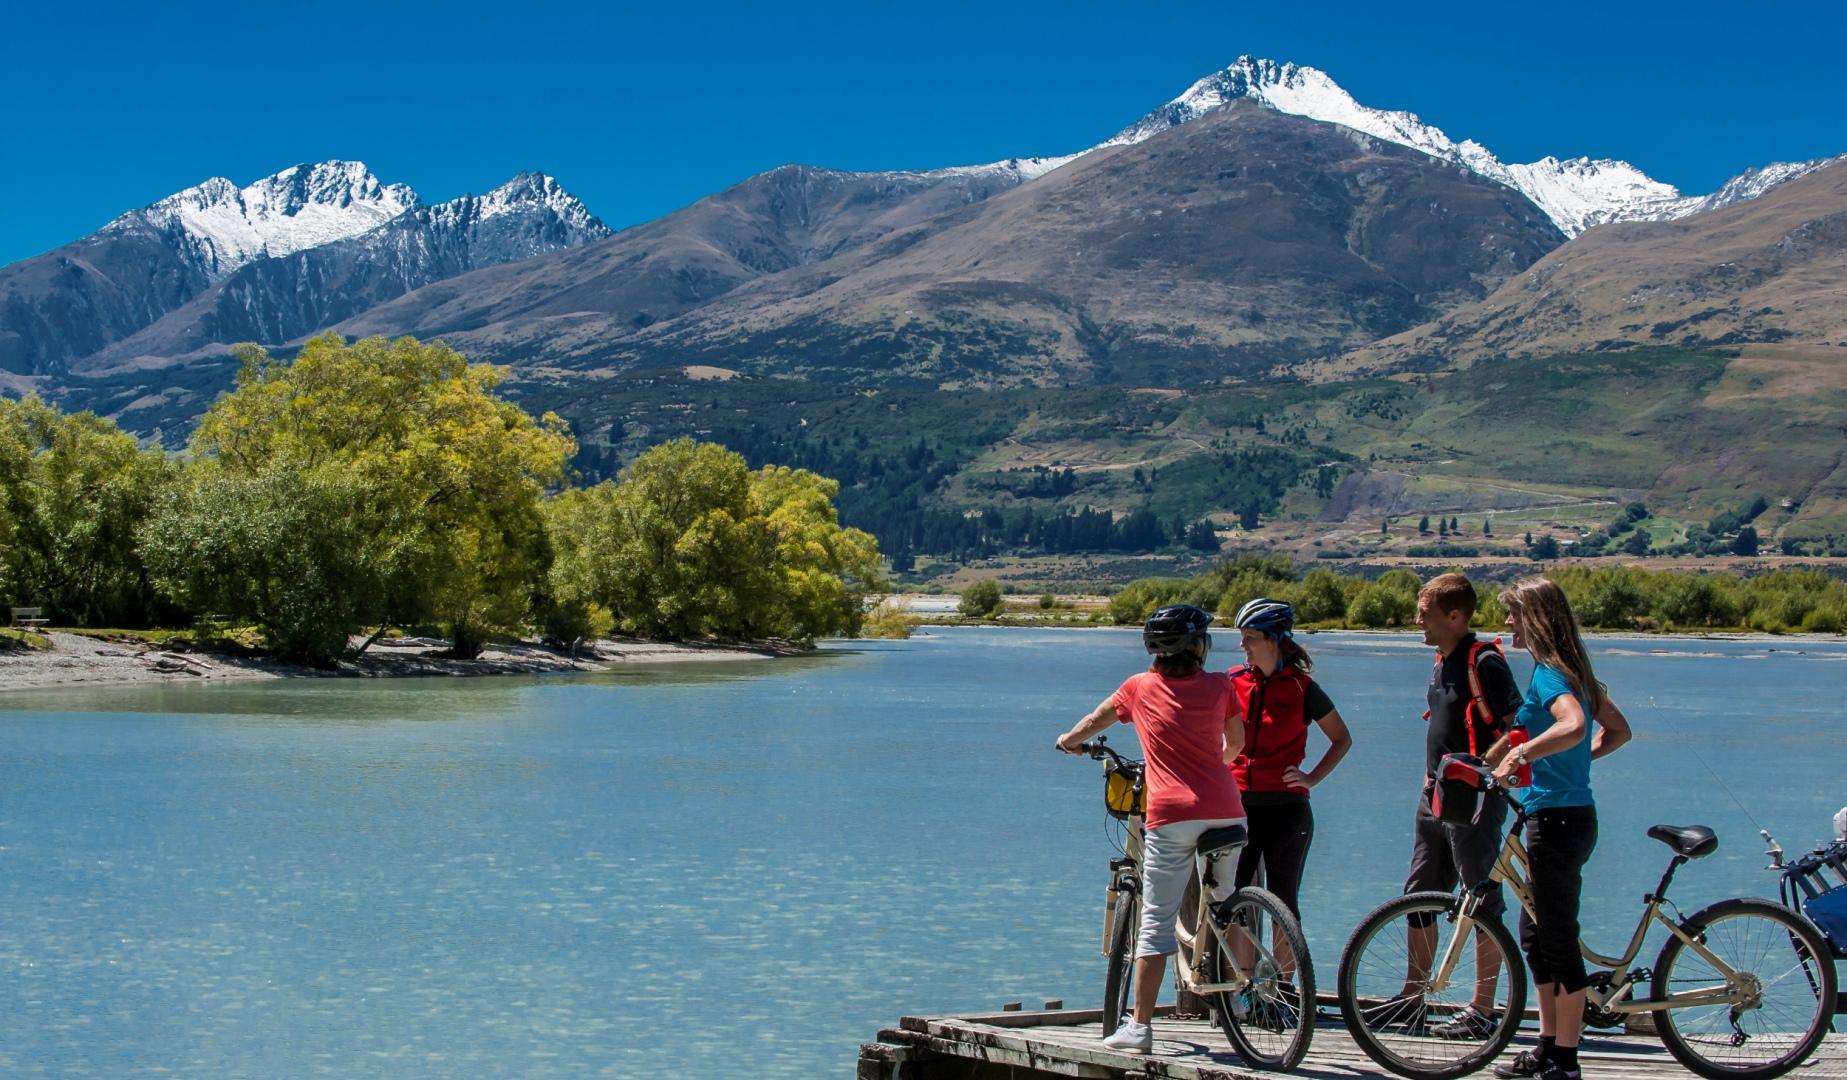 Thrill-seeking Lions fans will have a ball in Queenstown